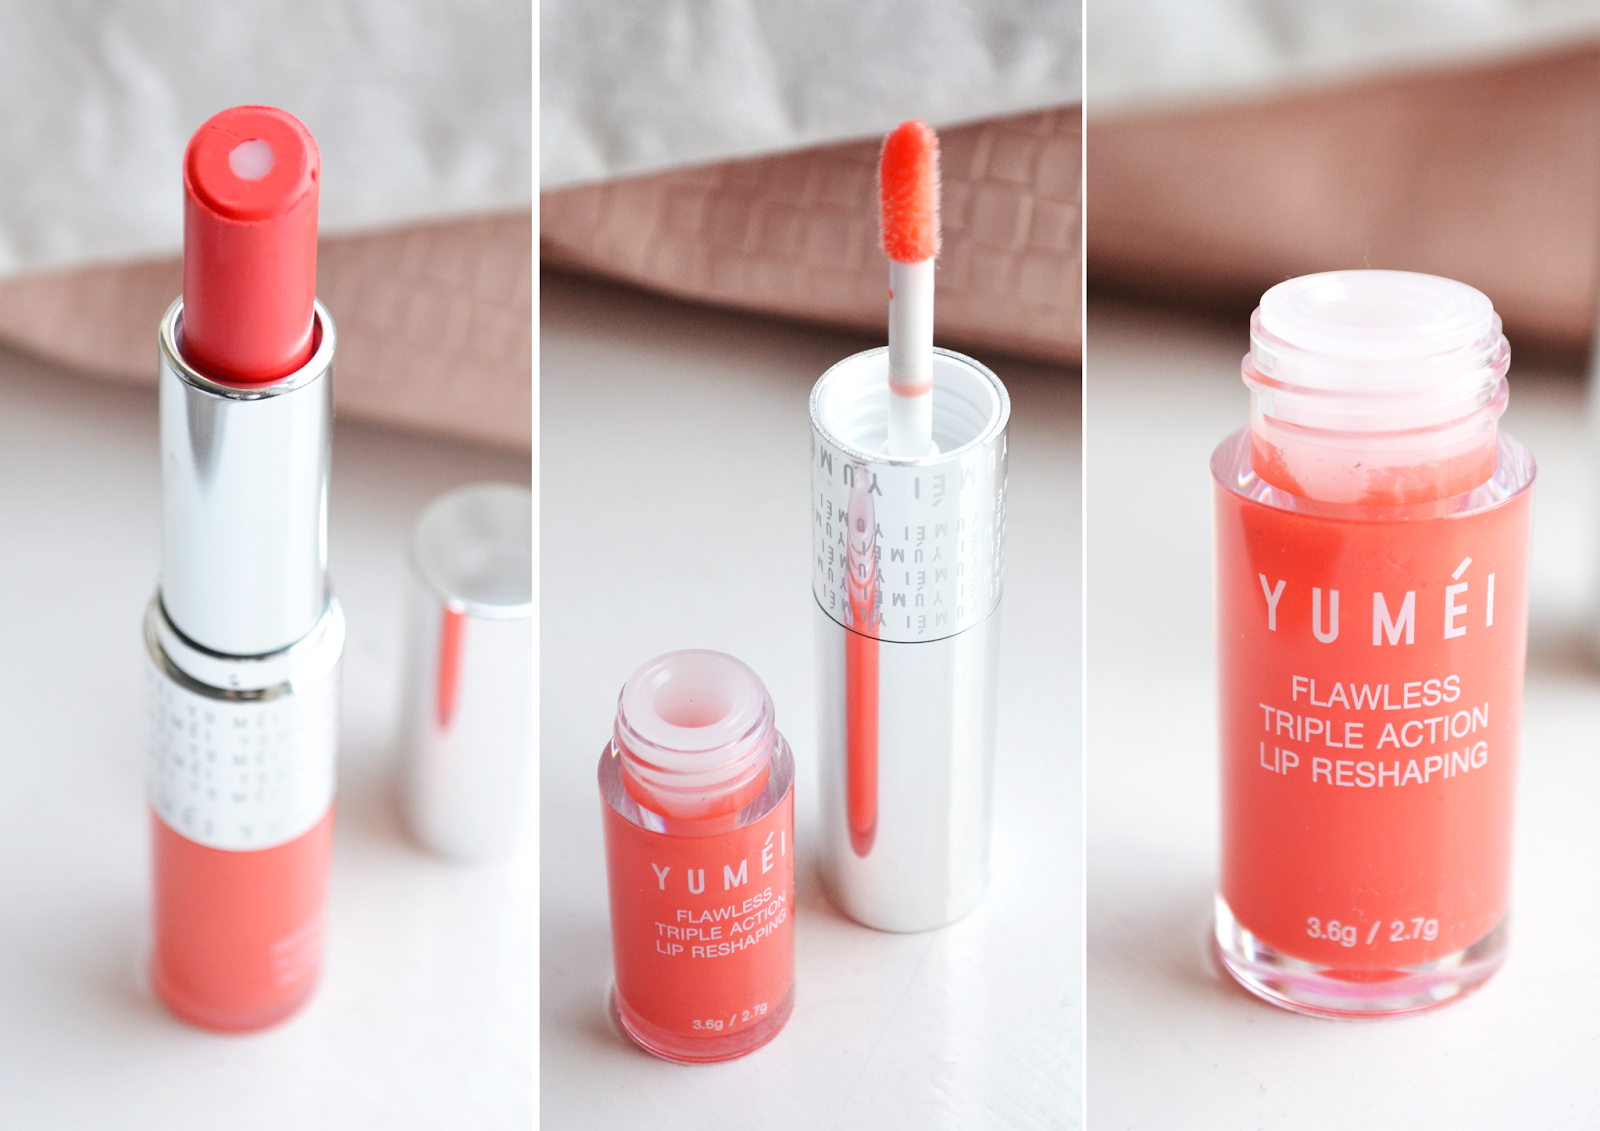 yumei triple action lip